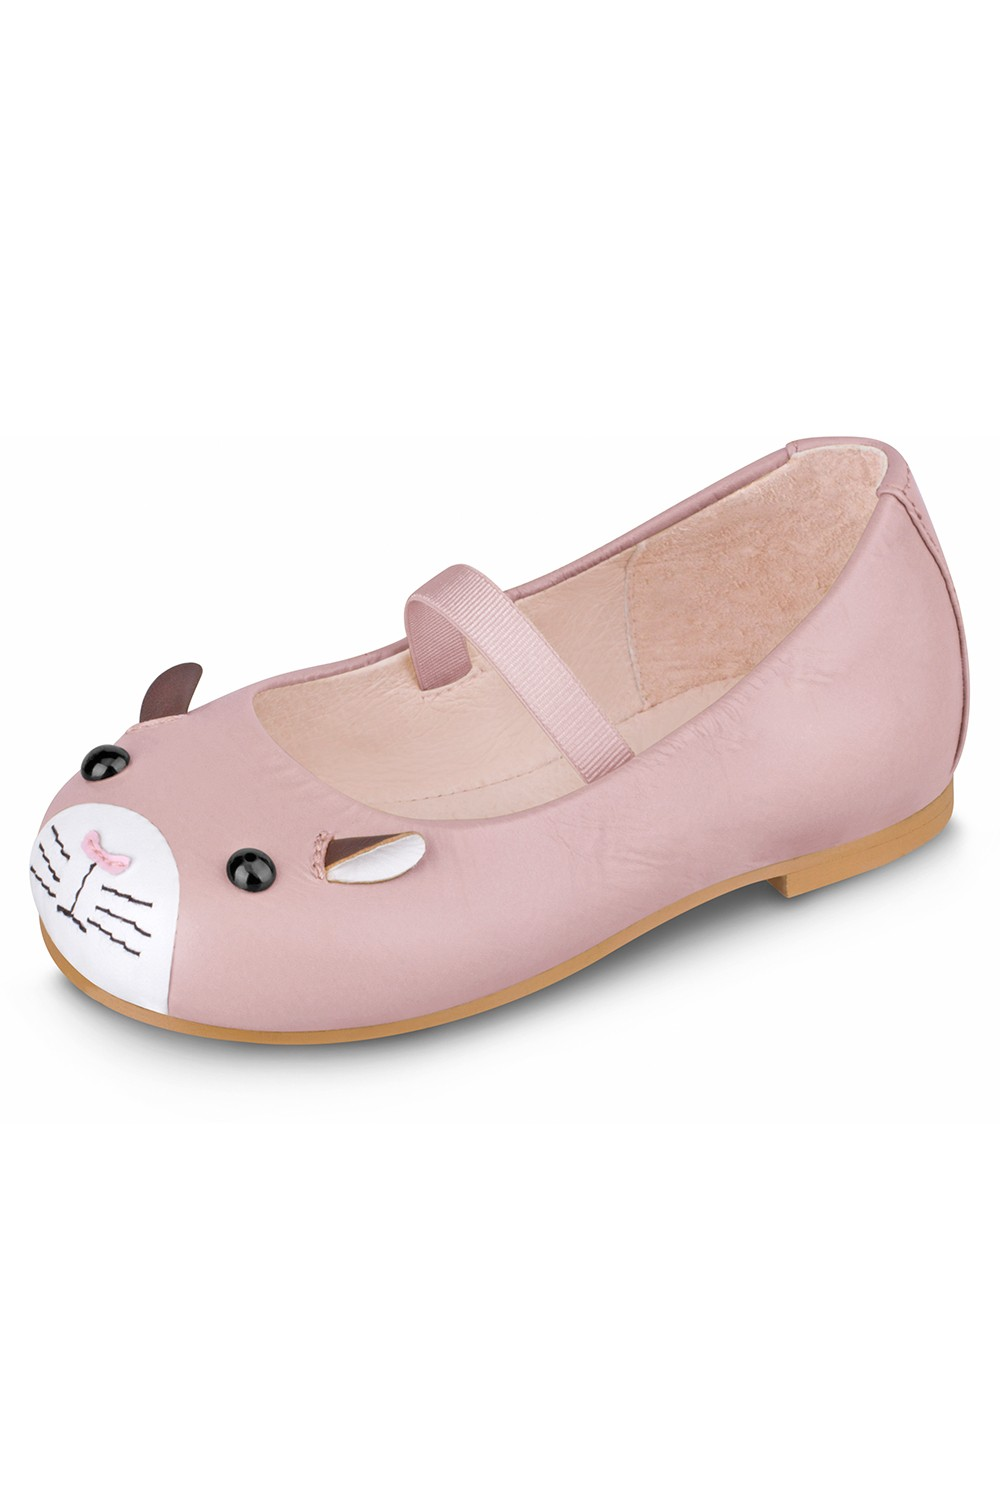 Hamster Ballet Flat Toddlers Fashion Shoes